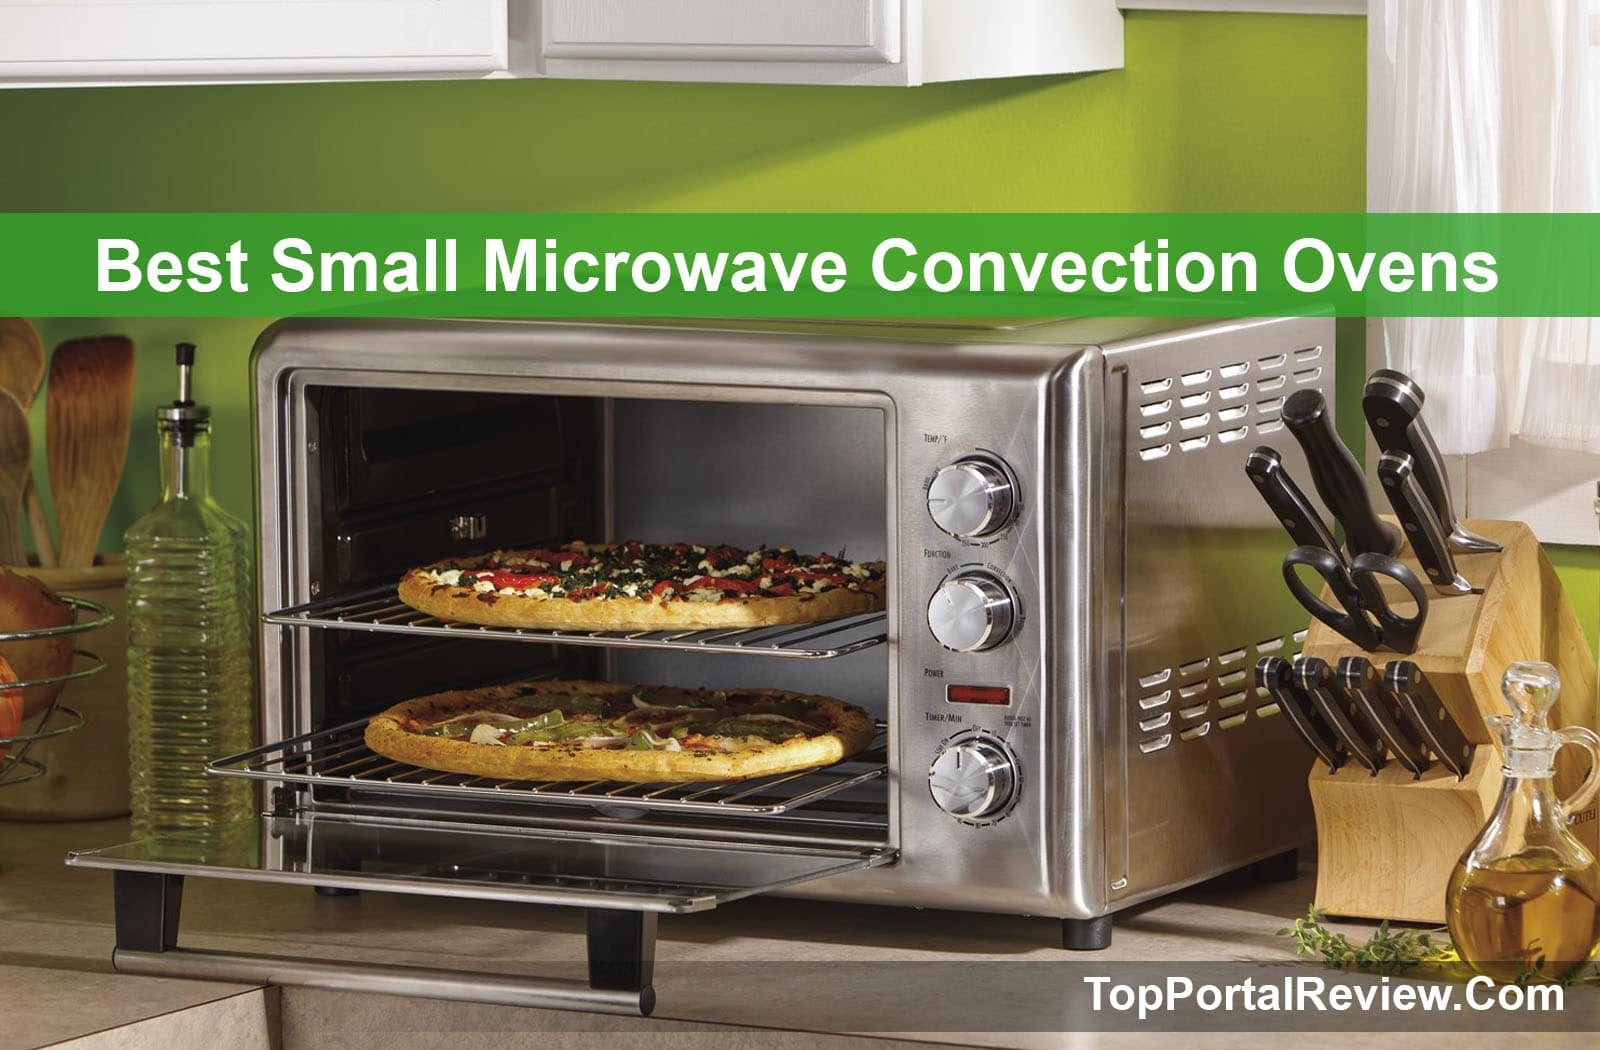 Top 10 Best Small Microwave Convection Ovens In 2019 Reviews